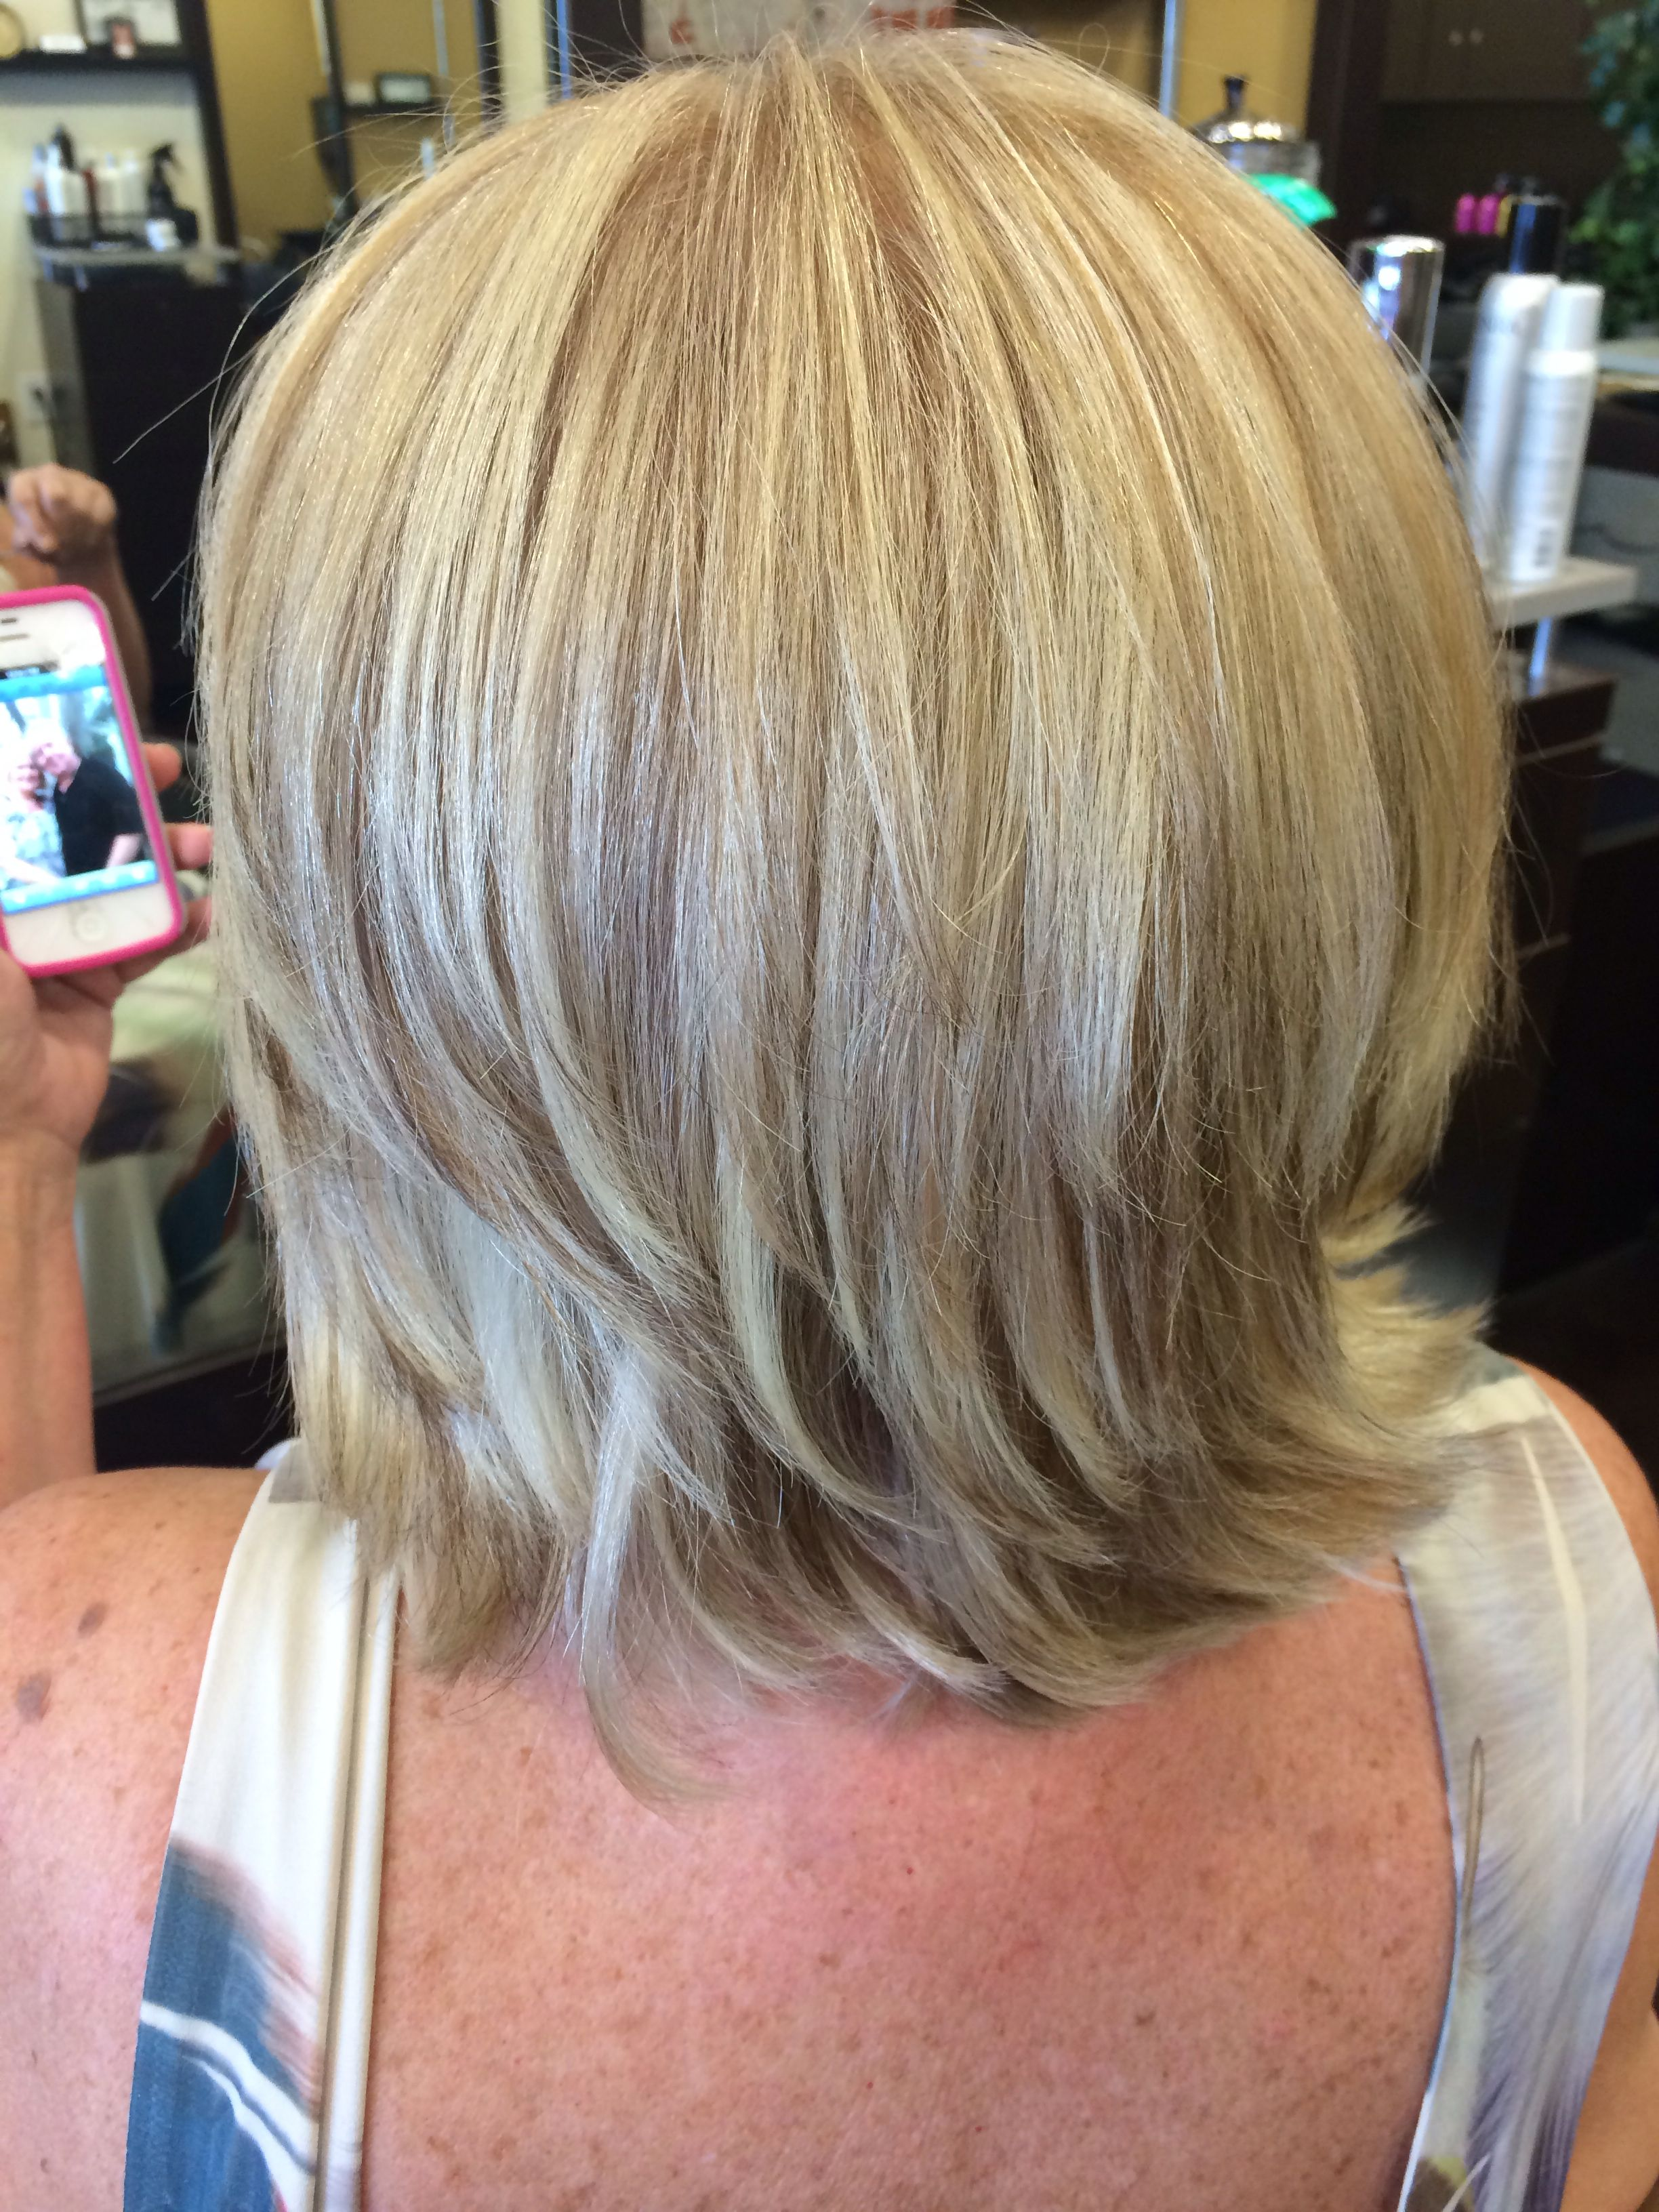 Not Quite Enough Contrast In The Highlights Over 60 Hairstyles